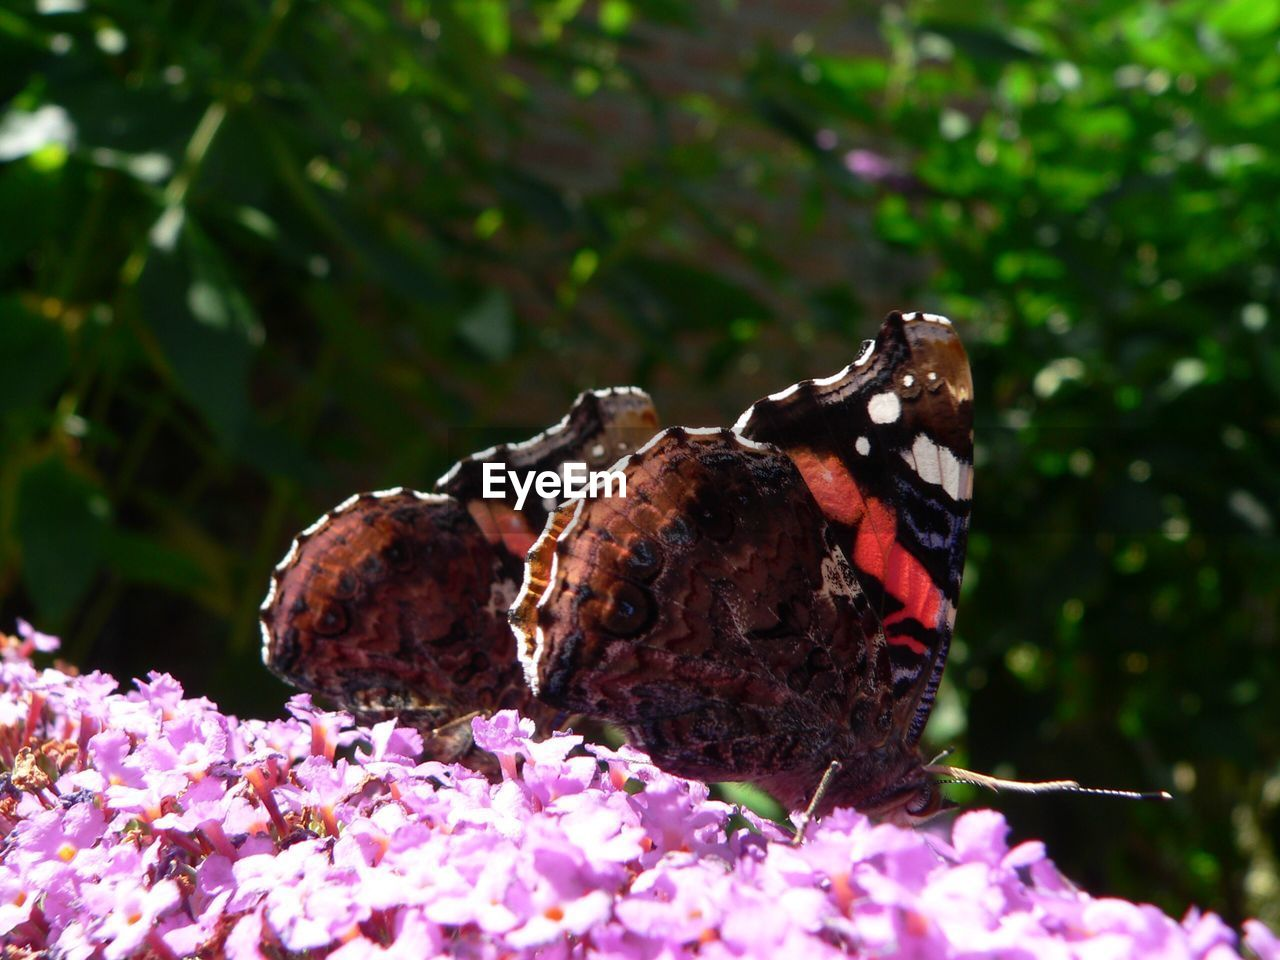 animal themes, nature, flower, animals in the wild, butterfly - insect, no people, outdoors, insect, fragility, day, beauty in nature, animal wildlife, plant, growth, focus on foreground, one animal, close-up, freshness